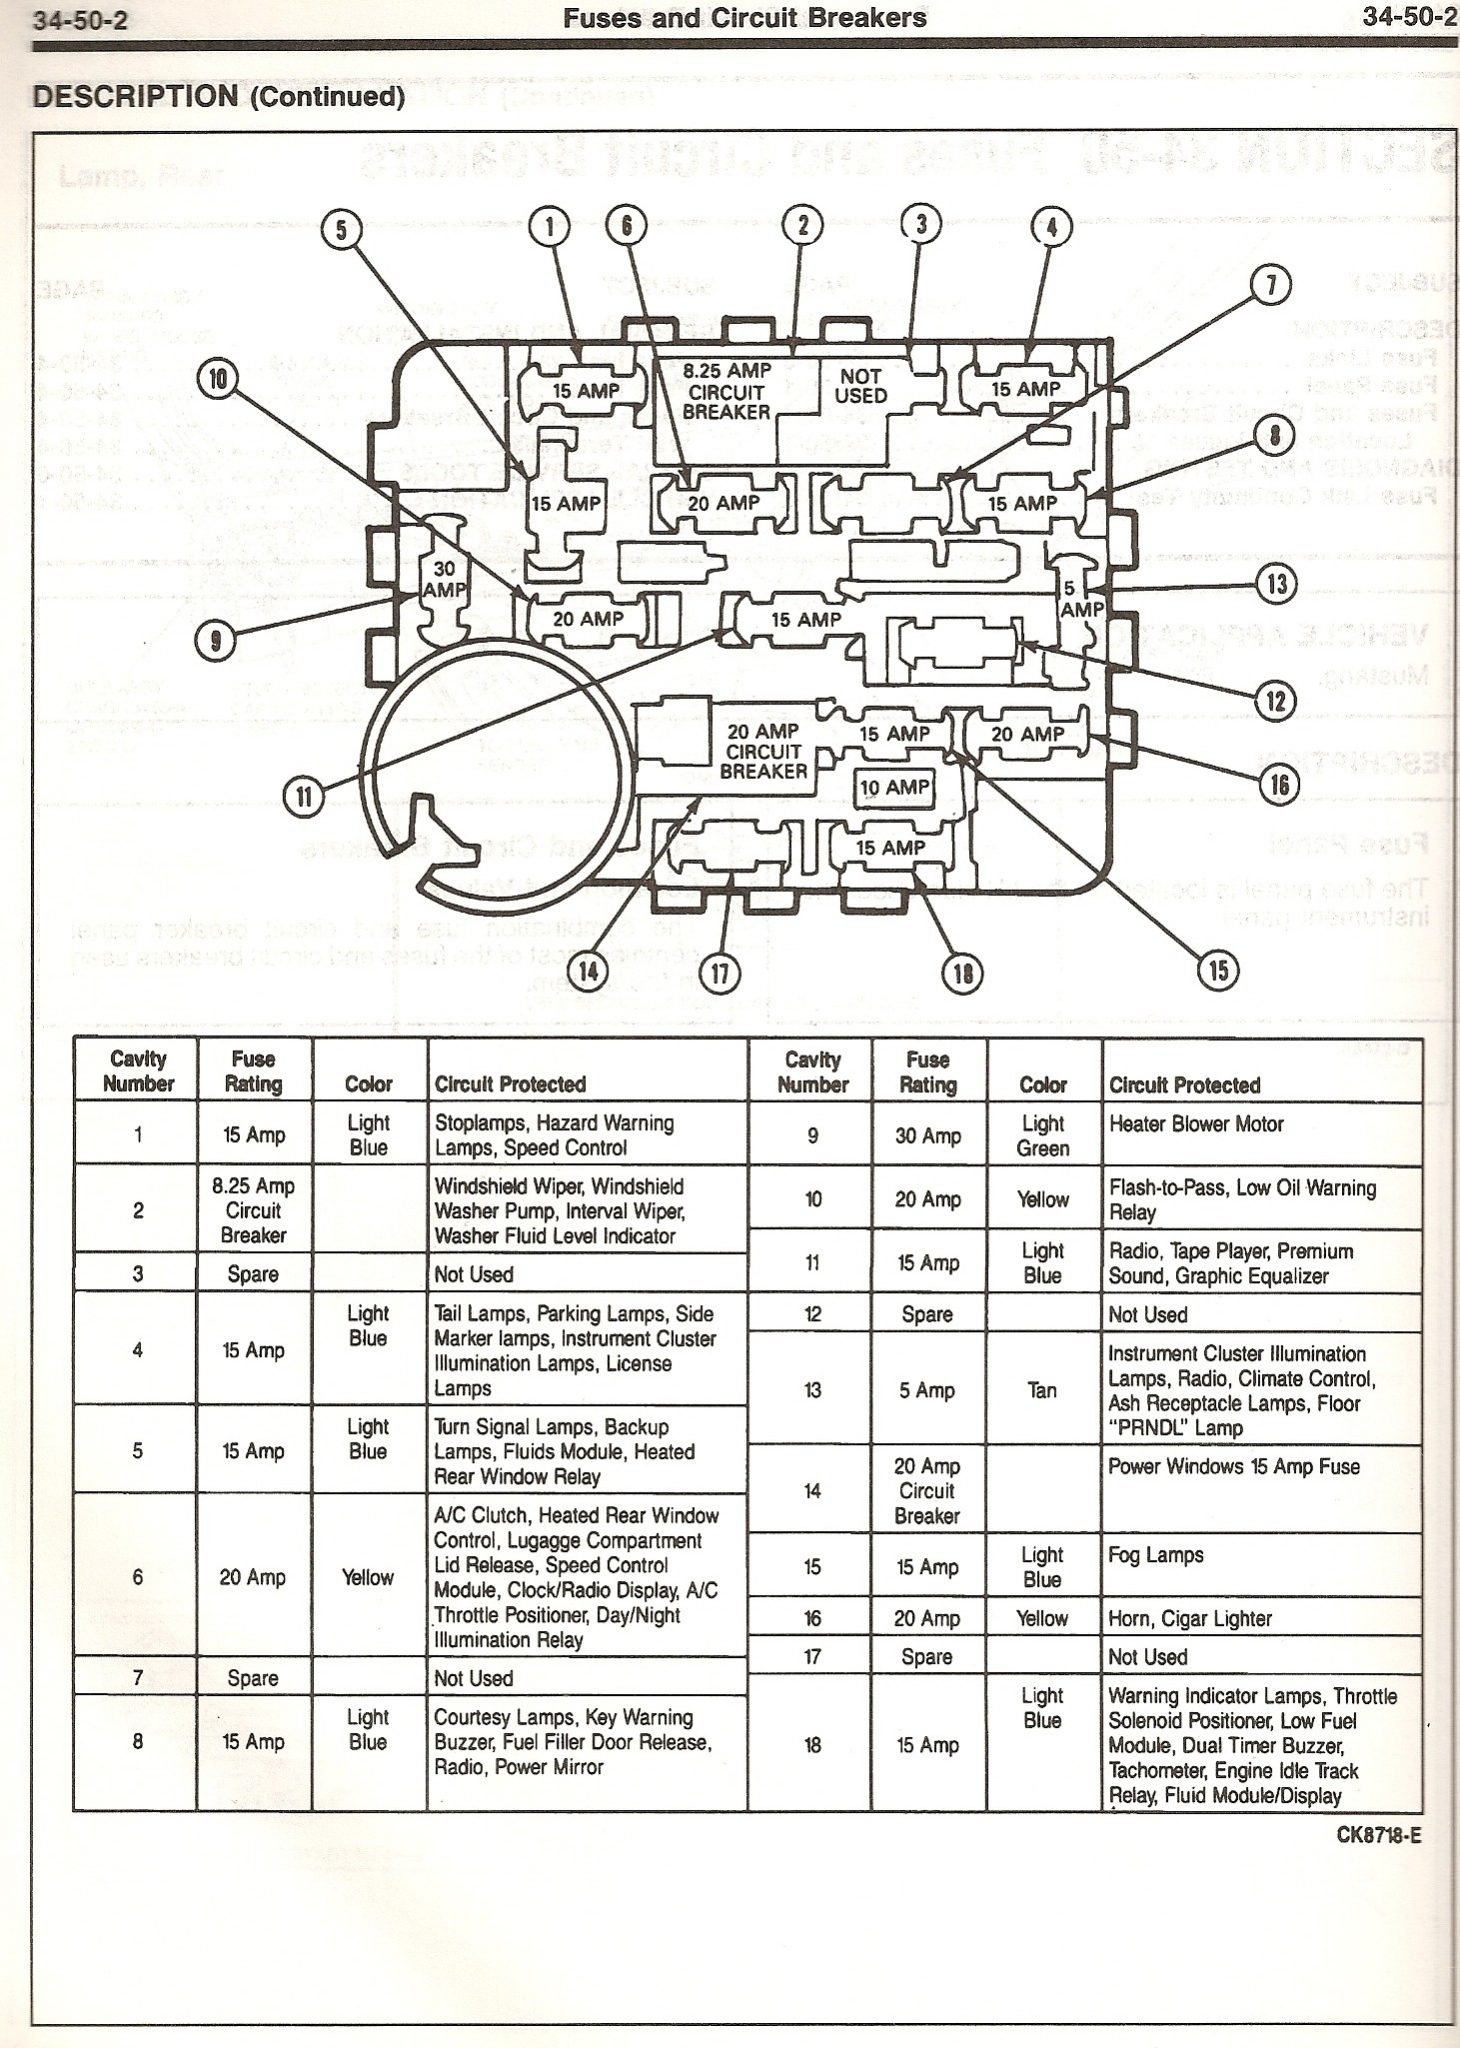 small resolution of 92 mustang fuse box wiring diagrams electrical 1970 mustang fuse box diagram 87 mustang fuse box